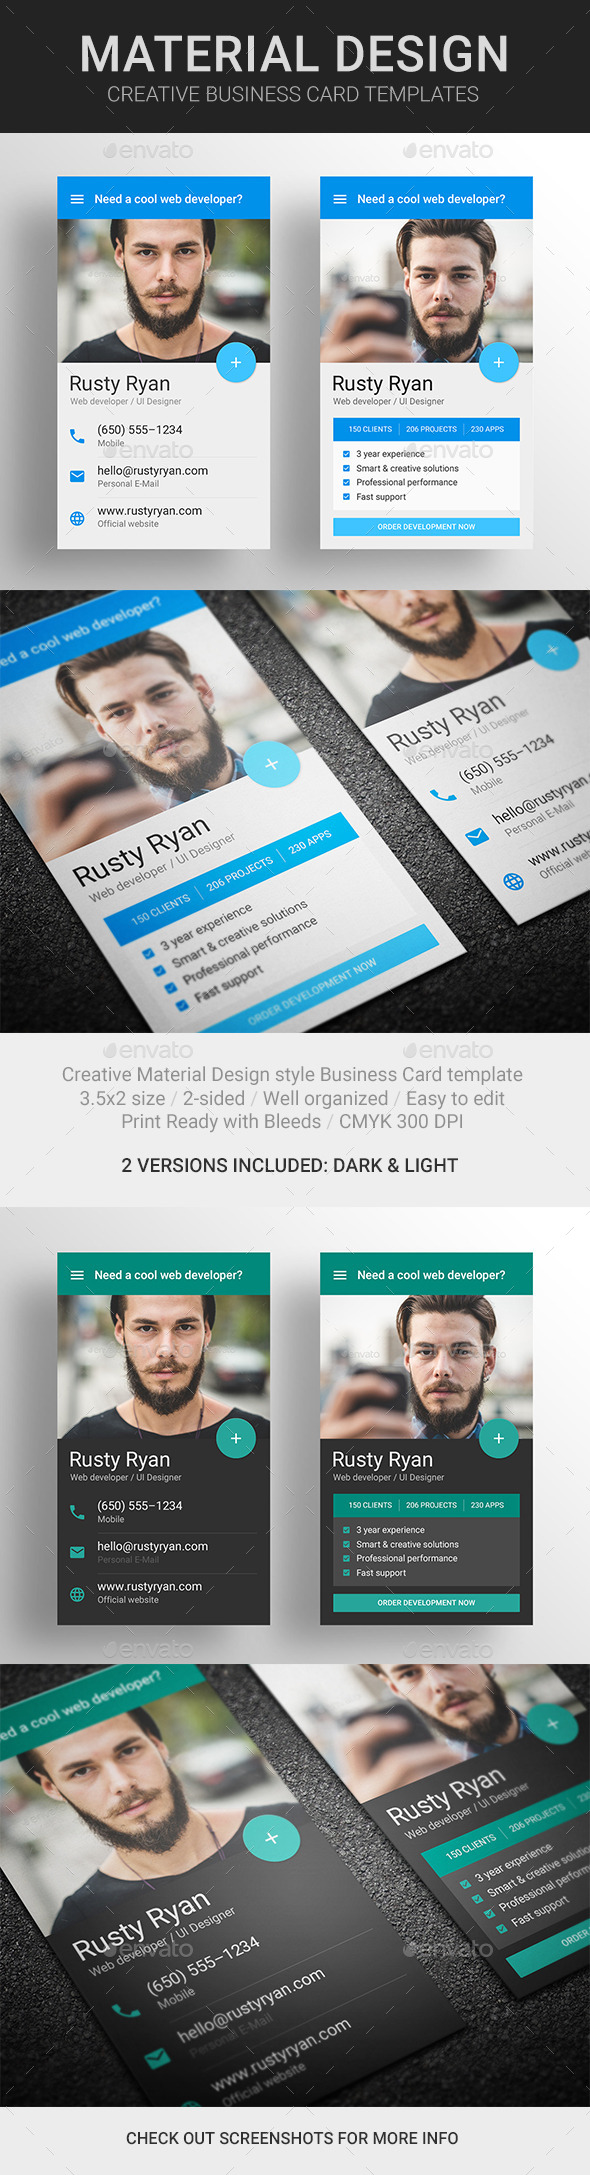 GraphicRiver MaDe Material Design Business Card Template 10425686